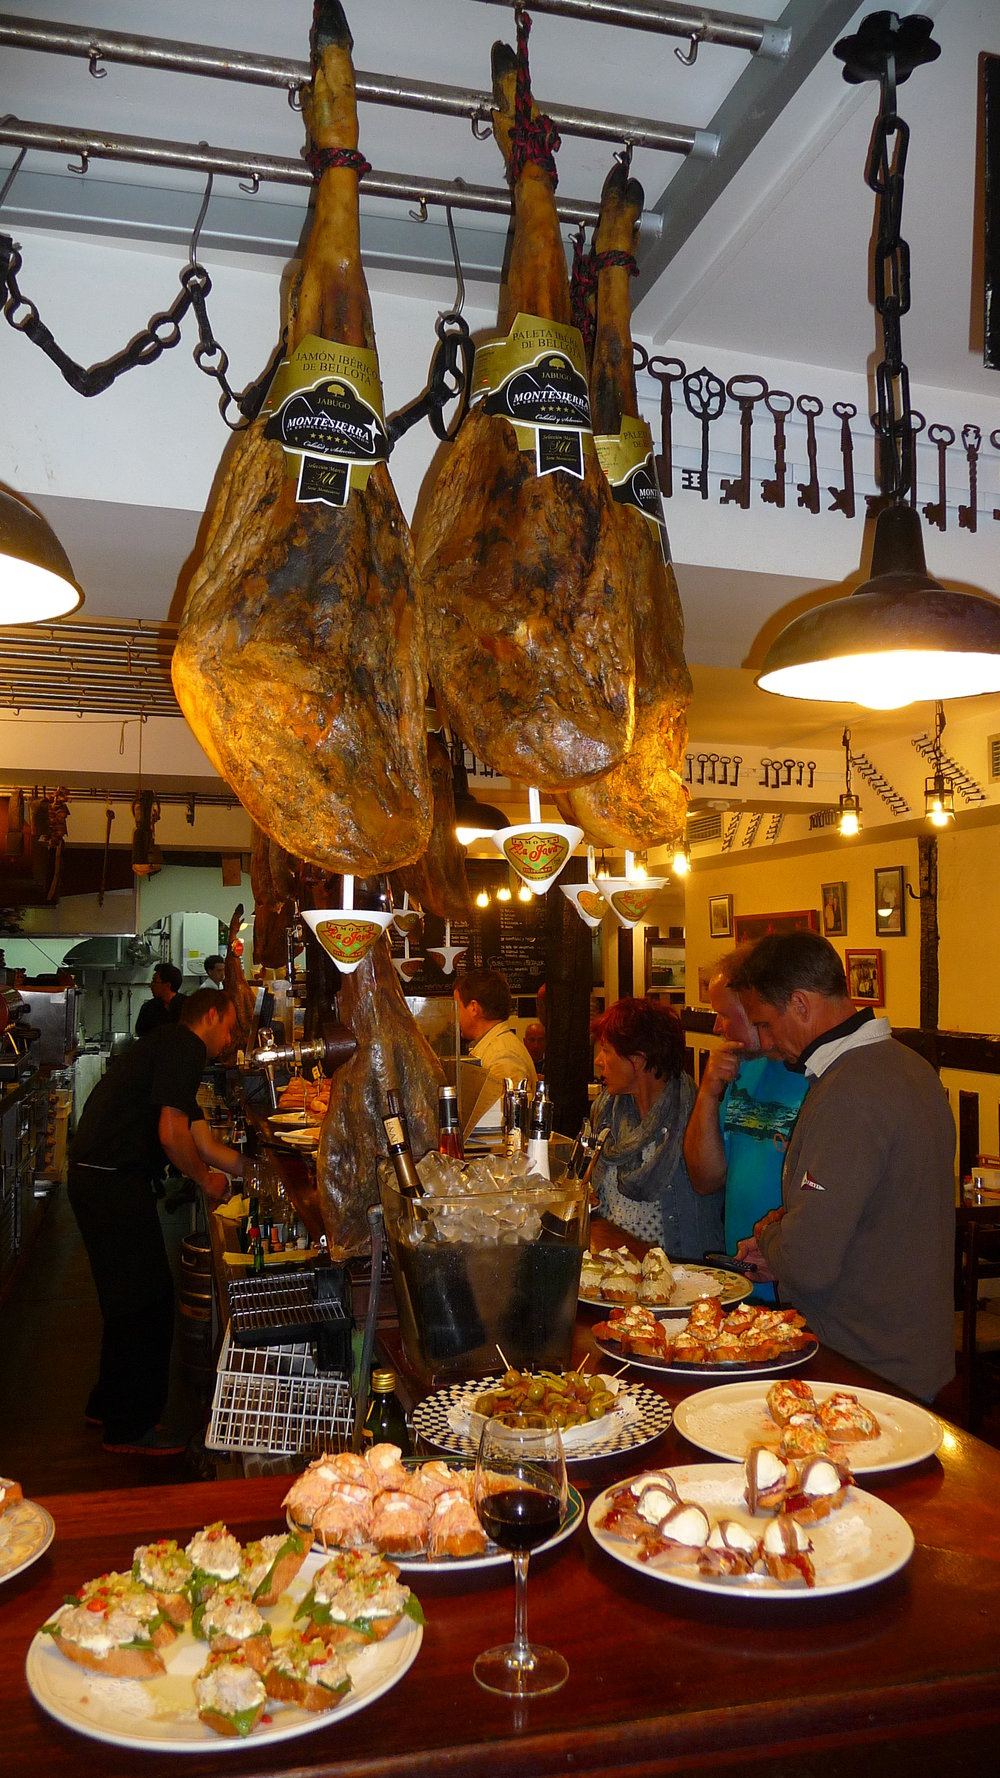 pintxos and the ham obsession of Spain in San Sebastian